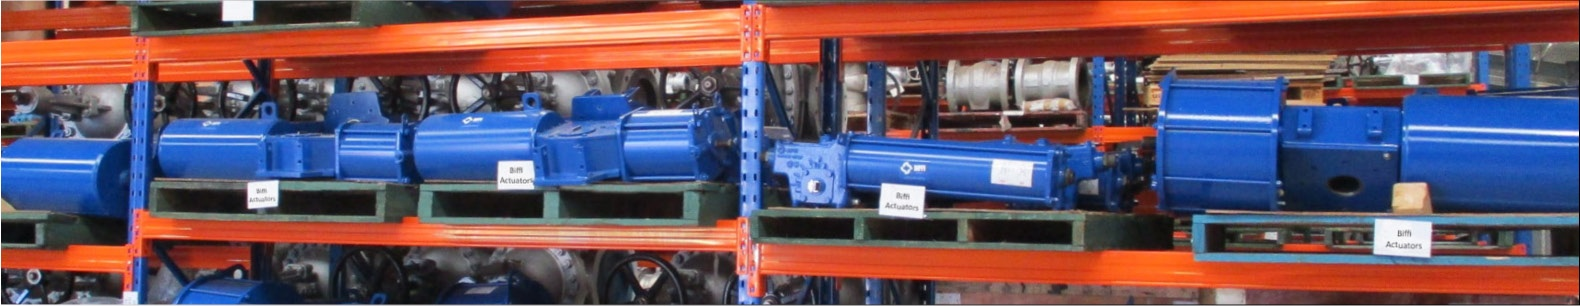 Emerson-Pneumatic, Hydraulic and Electric Actuators | Global Supply Line